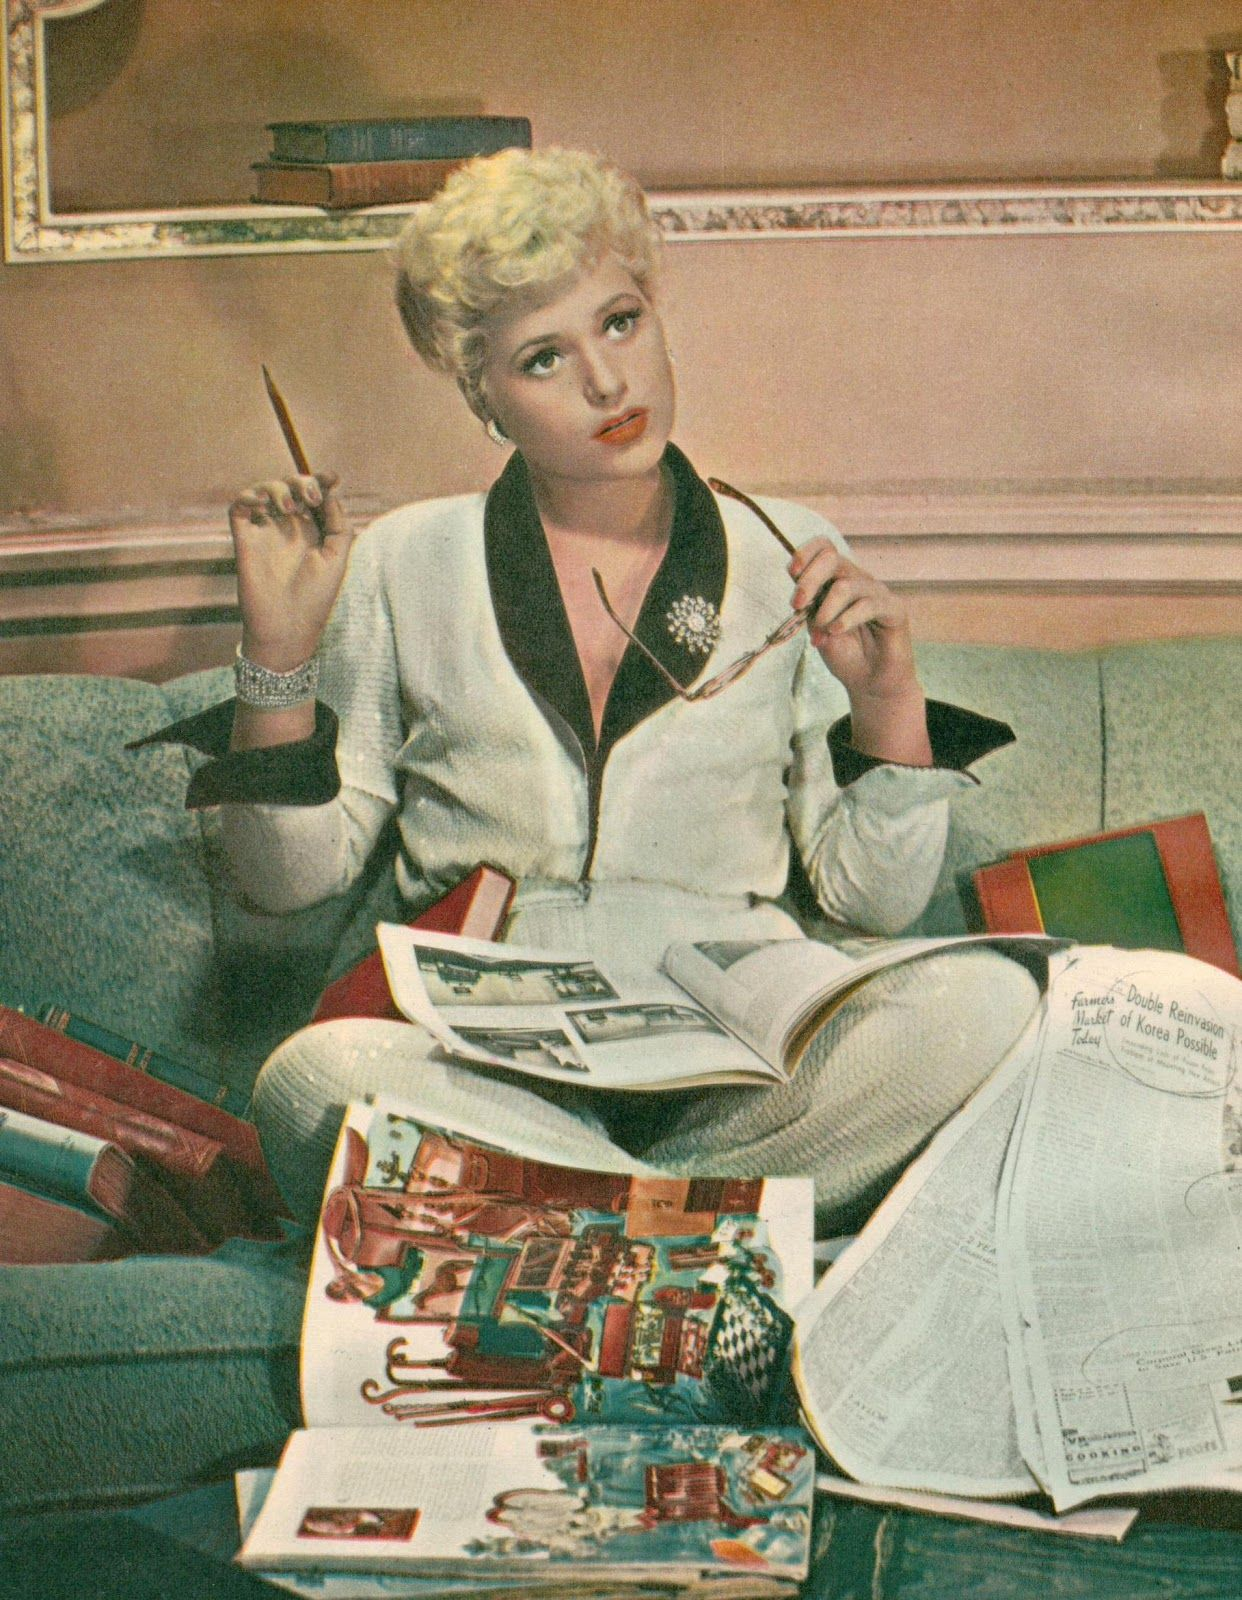 Film Review 195152 Judy Holliday Judy holliday, Glamour